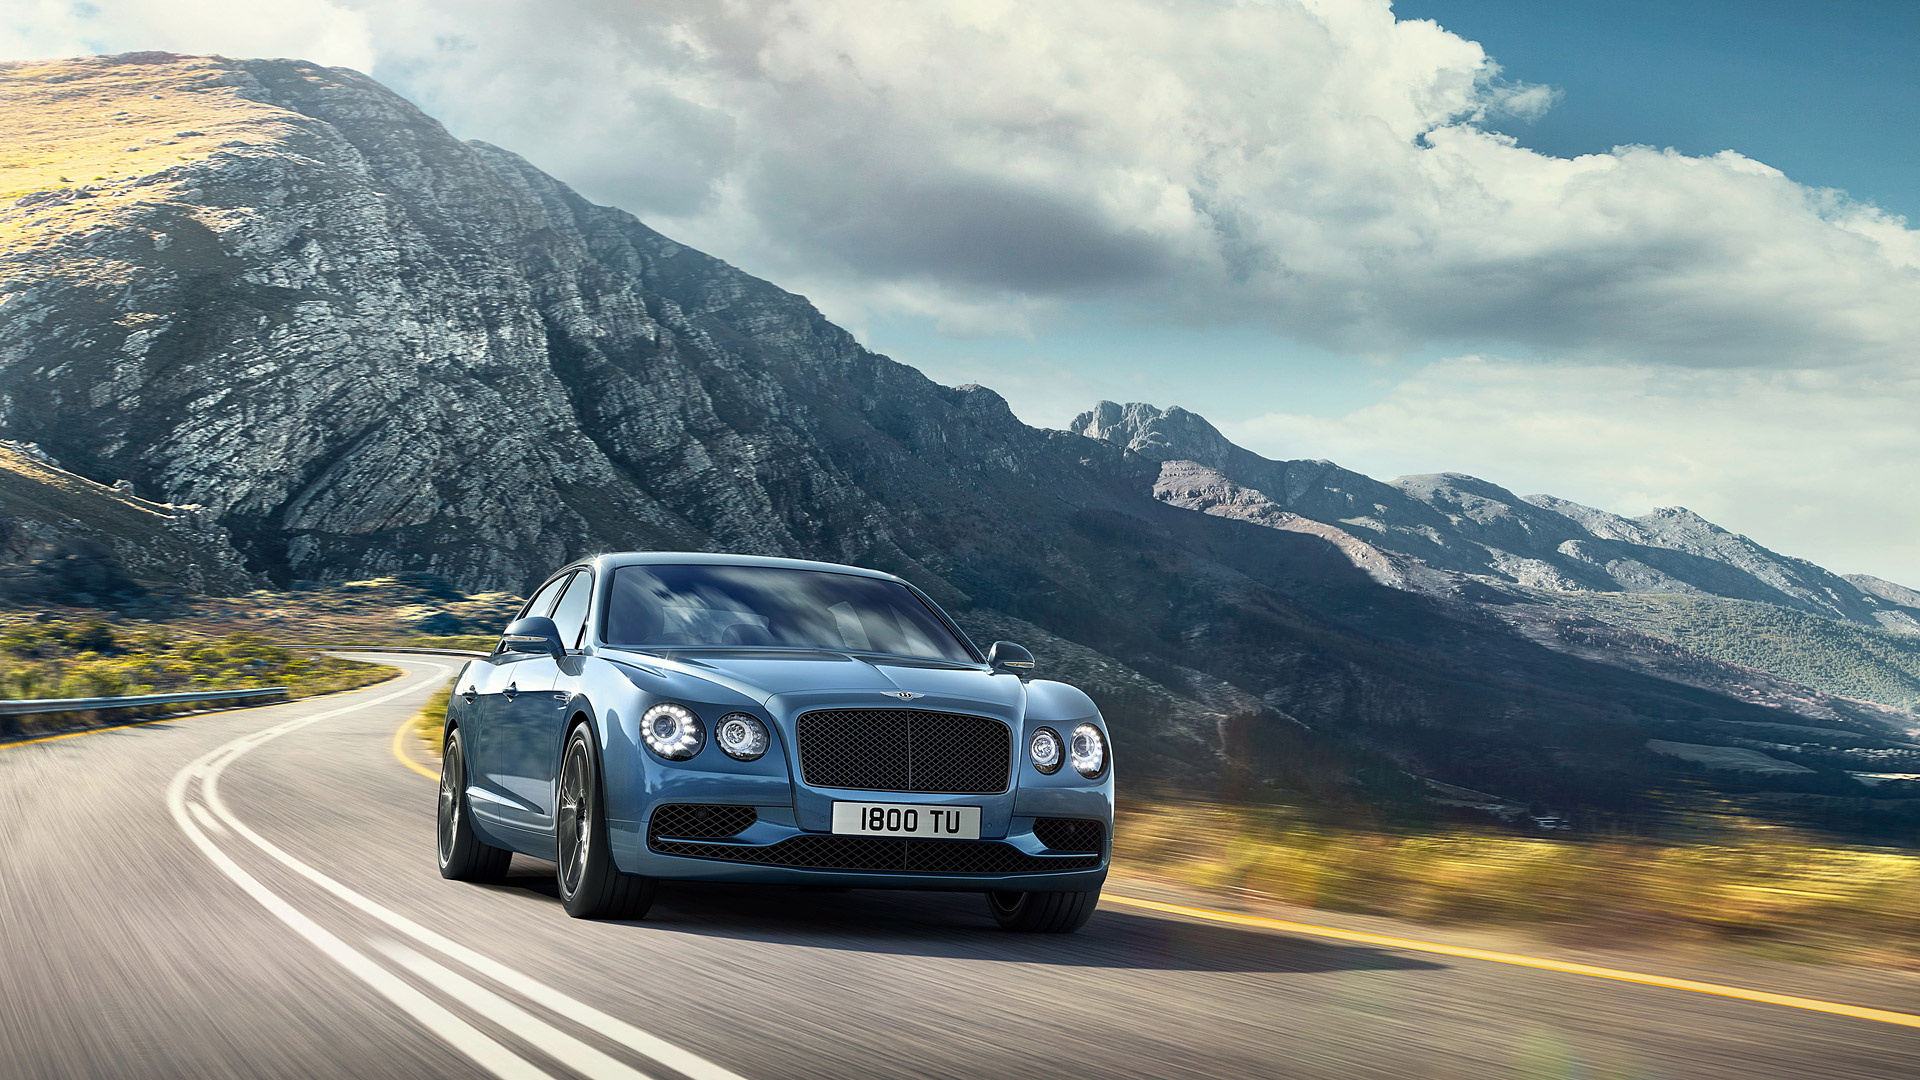 2017 Bentley Flying Spur W12 S Wallpapers HD Images   WSupercars 1920x1080